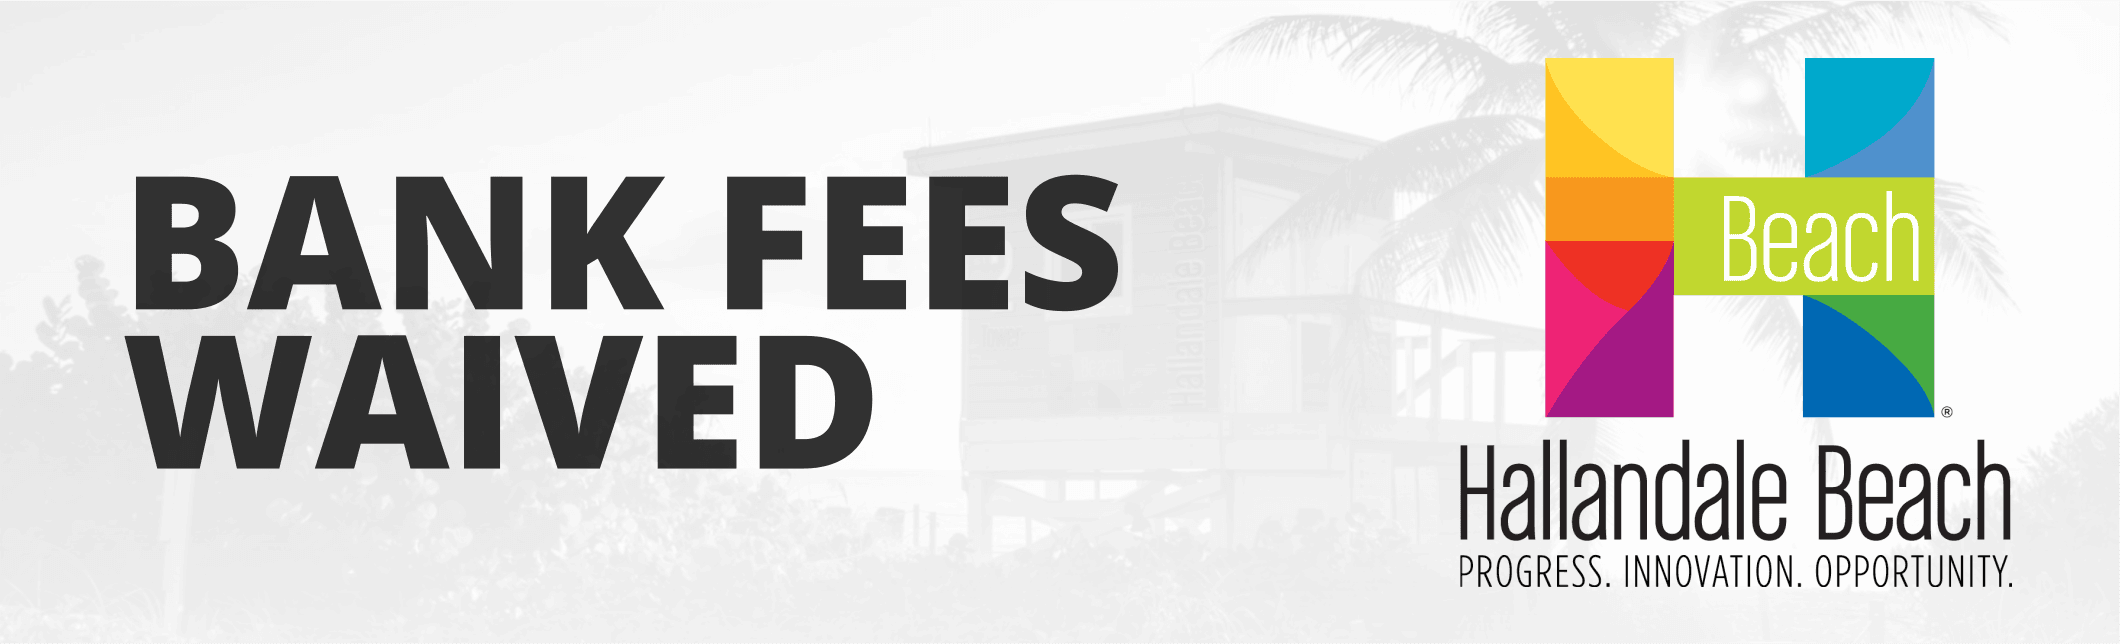 BANK FEES WAIVED